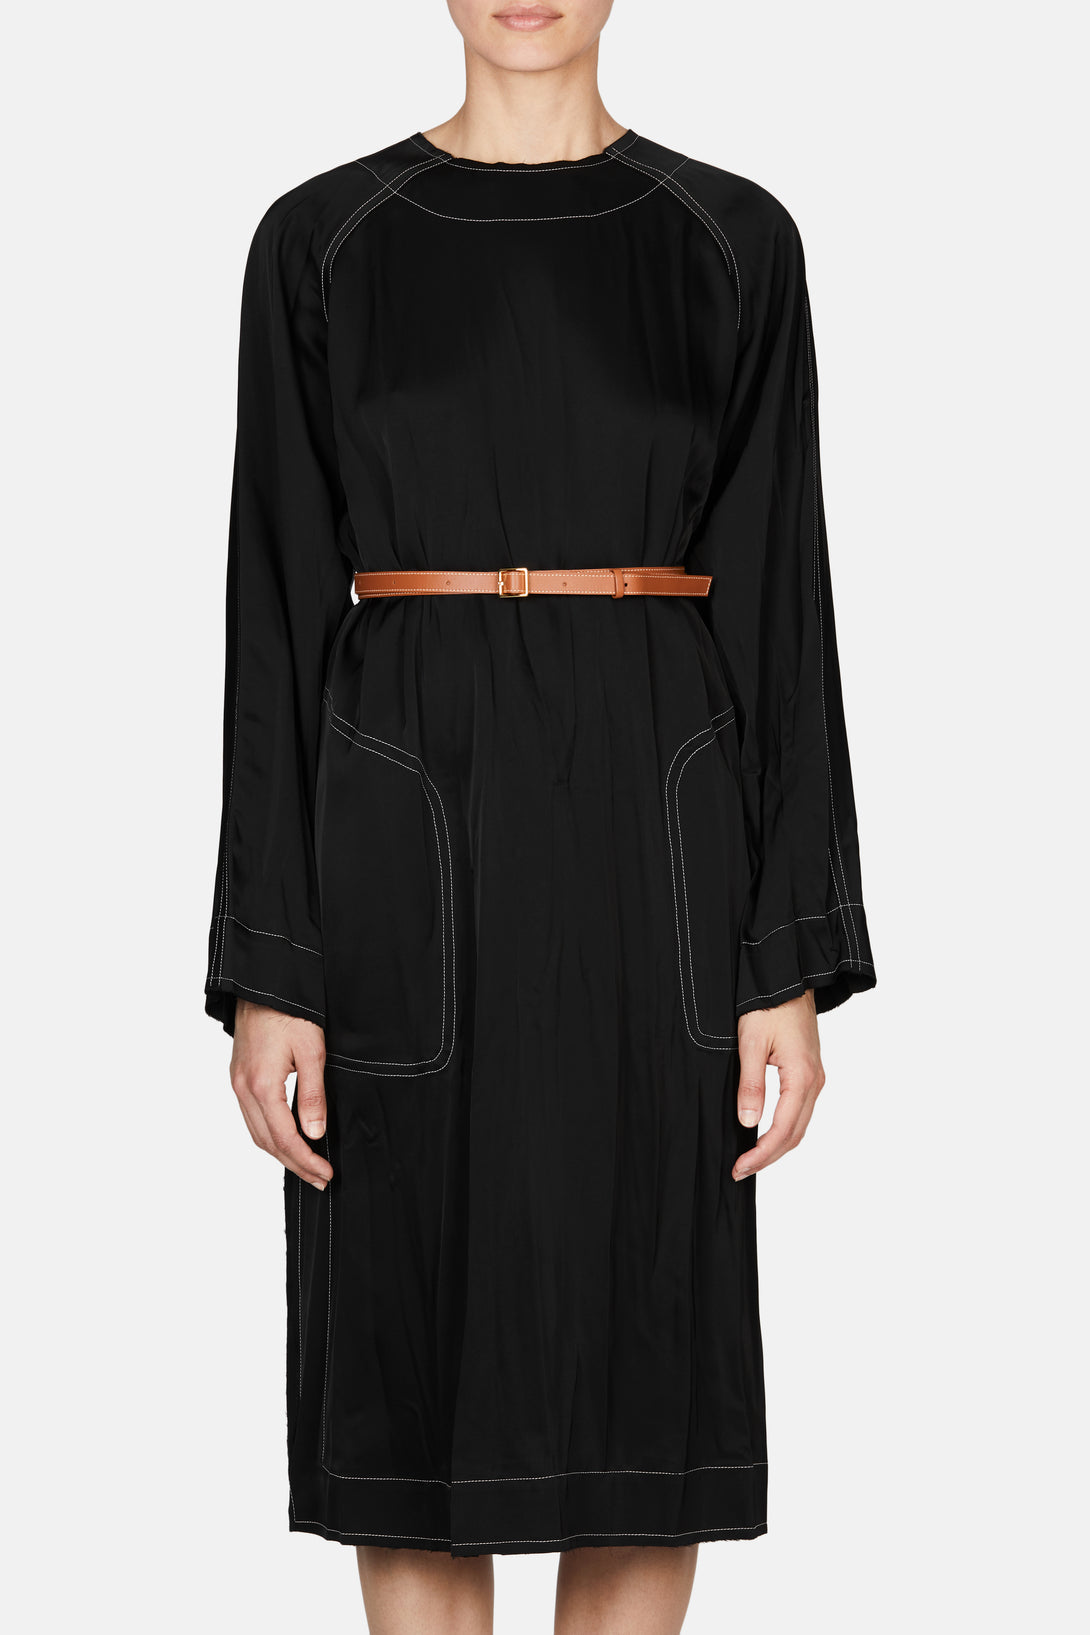 Belted Tunic Dress - Black